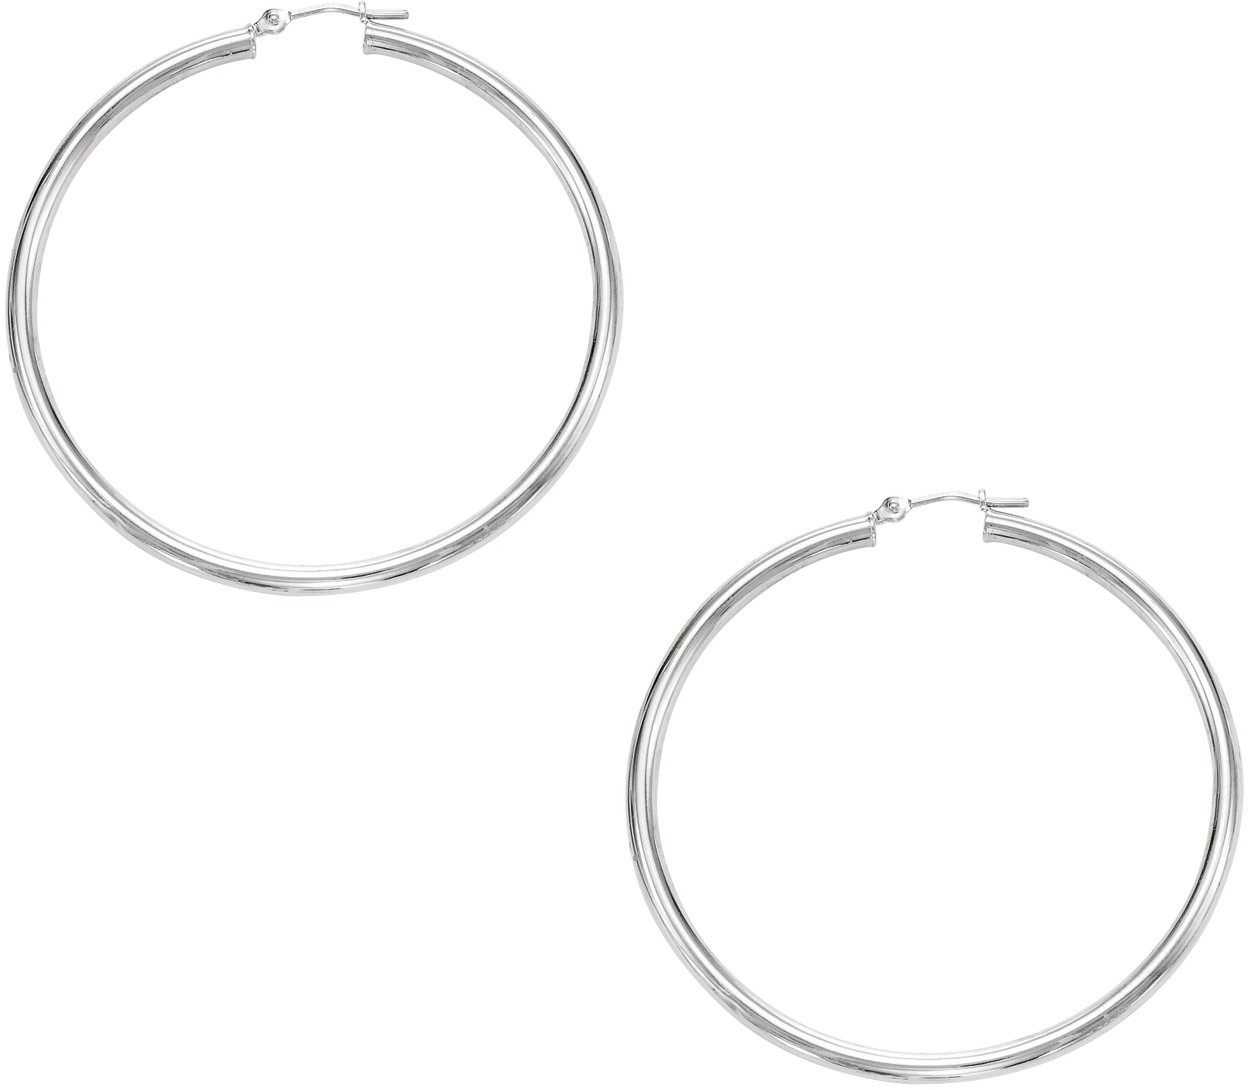 "10K White Gold 2.0x40mm (0.08""x1.57"") Shiny Round Hoop Earrings"